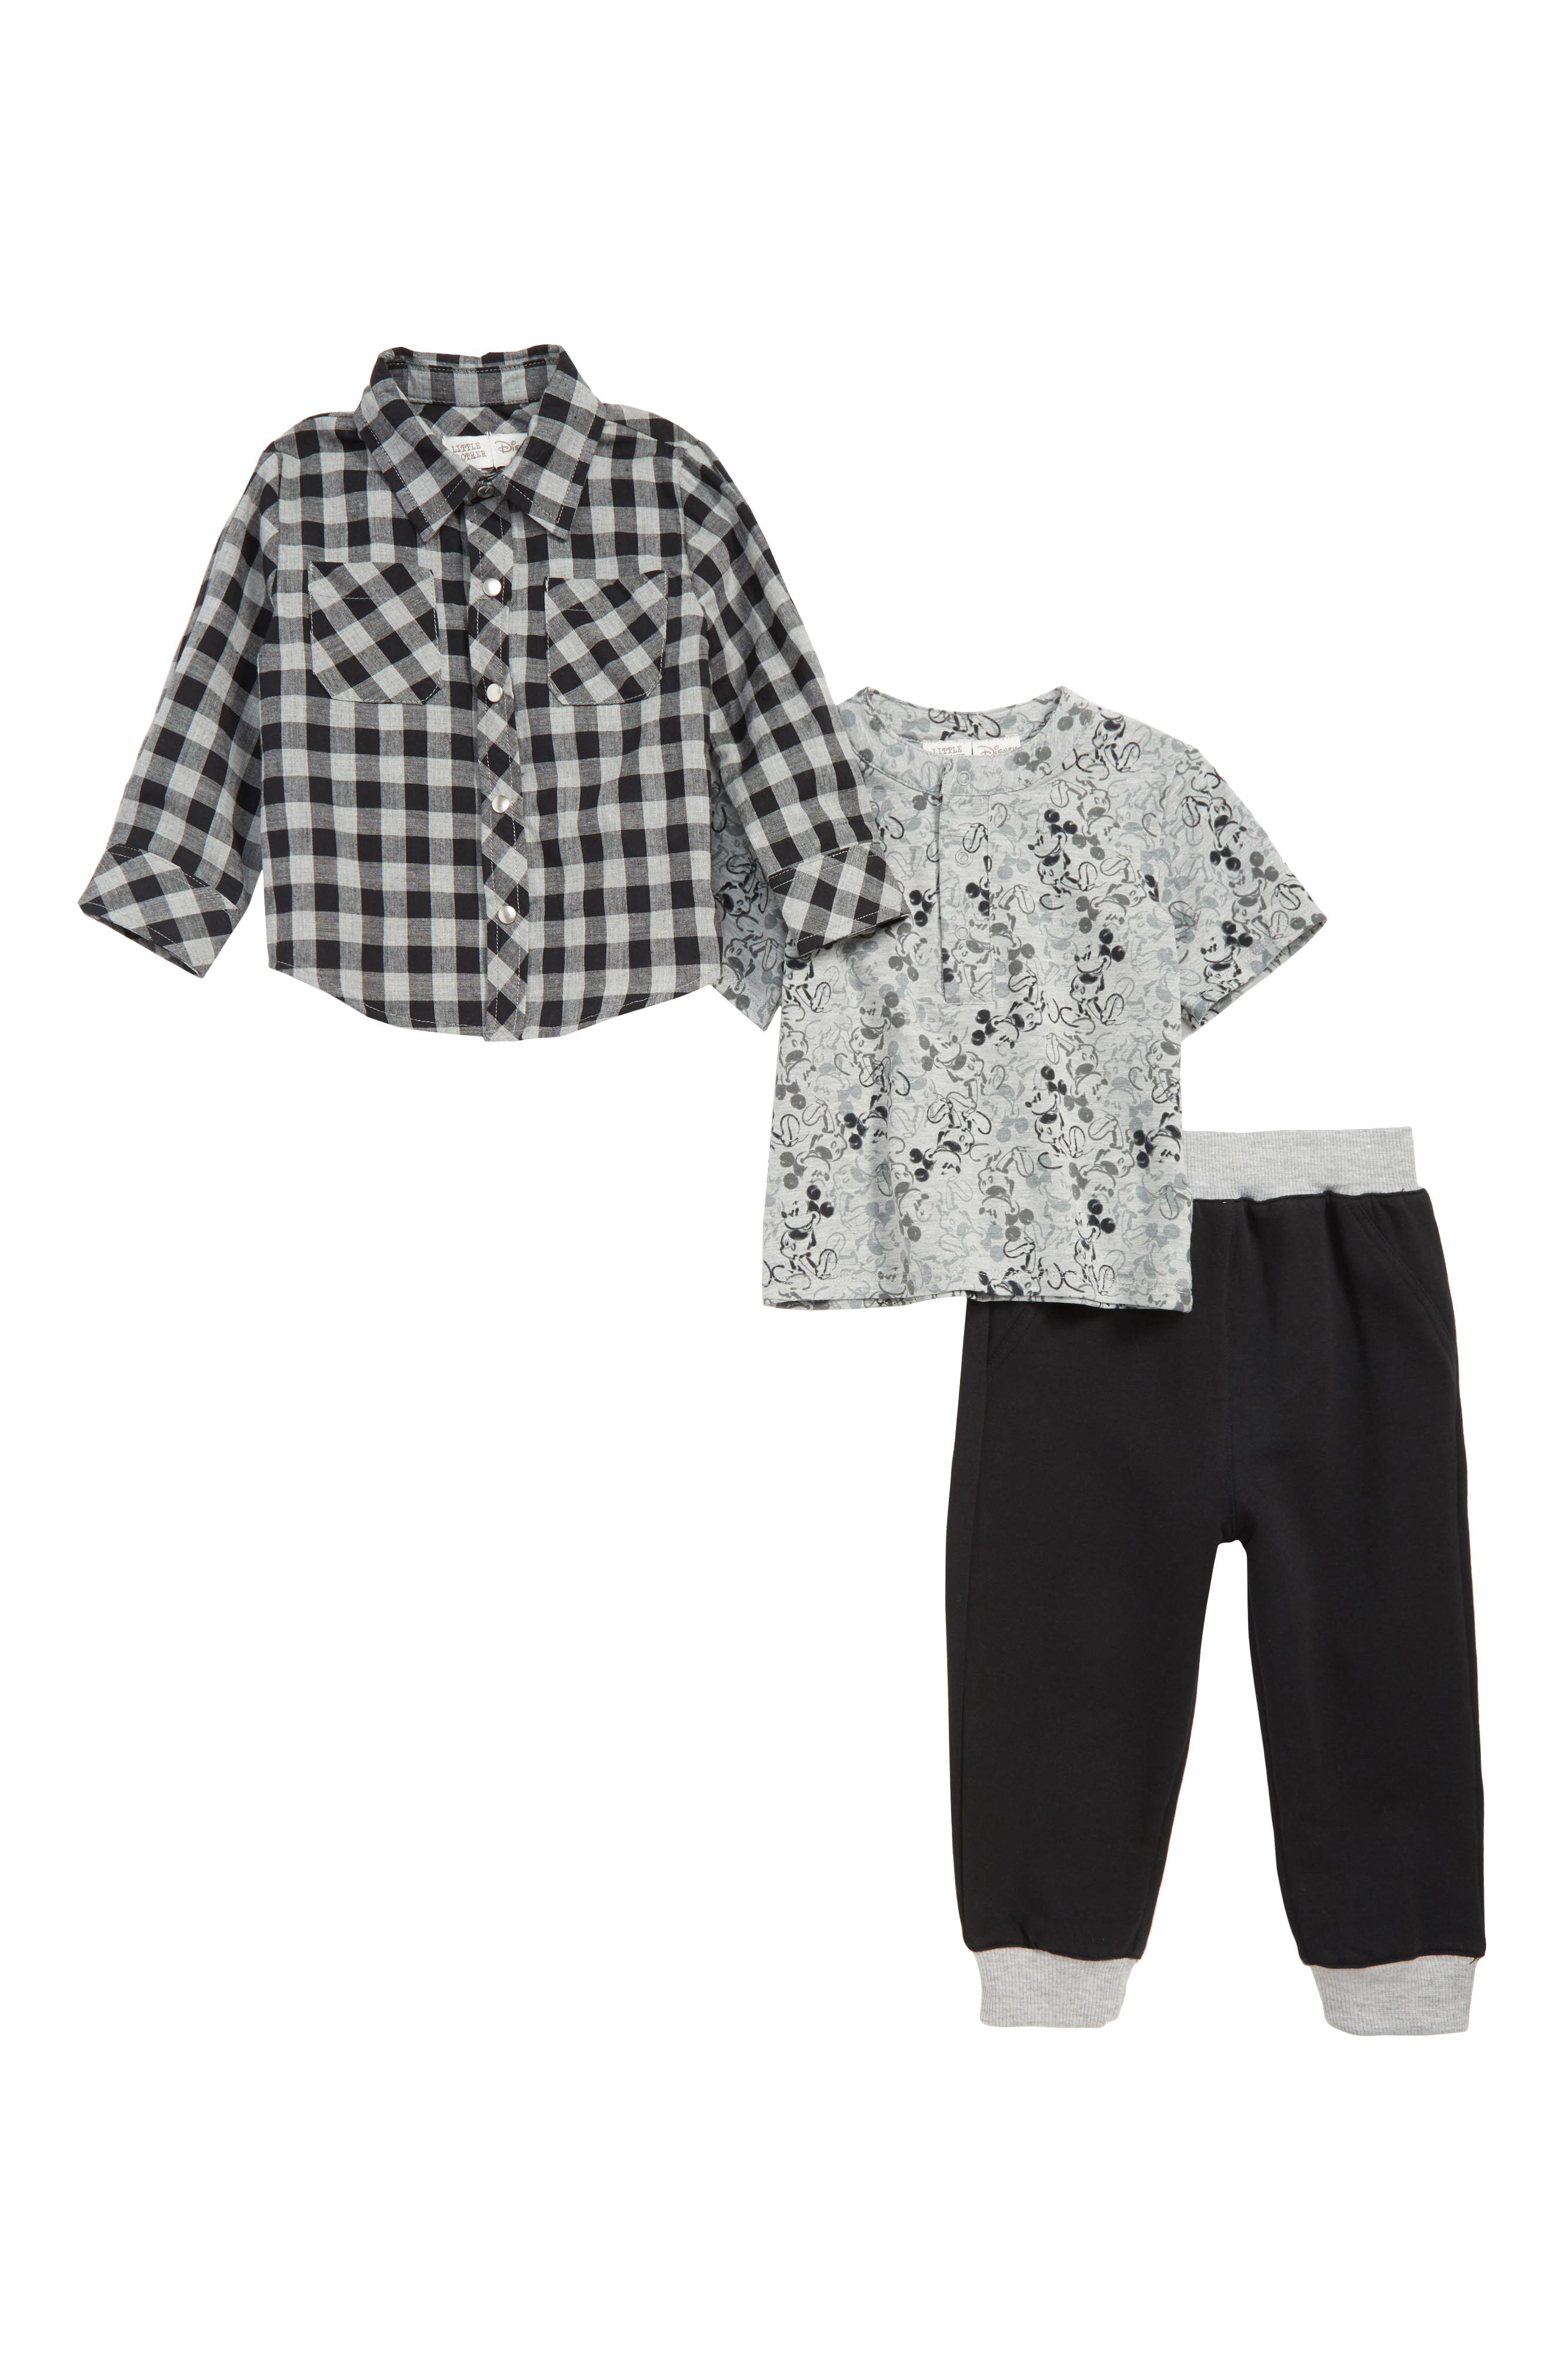 Image of Little Brother By Pippa & Julie x Disney Plaid Shirt, Mickey Mouse Henley & Sweatpants Set